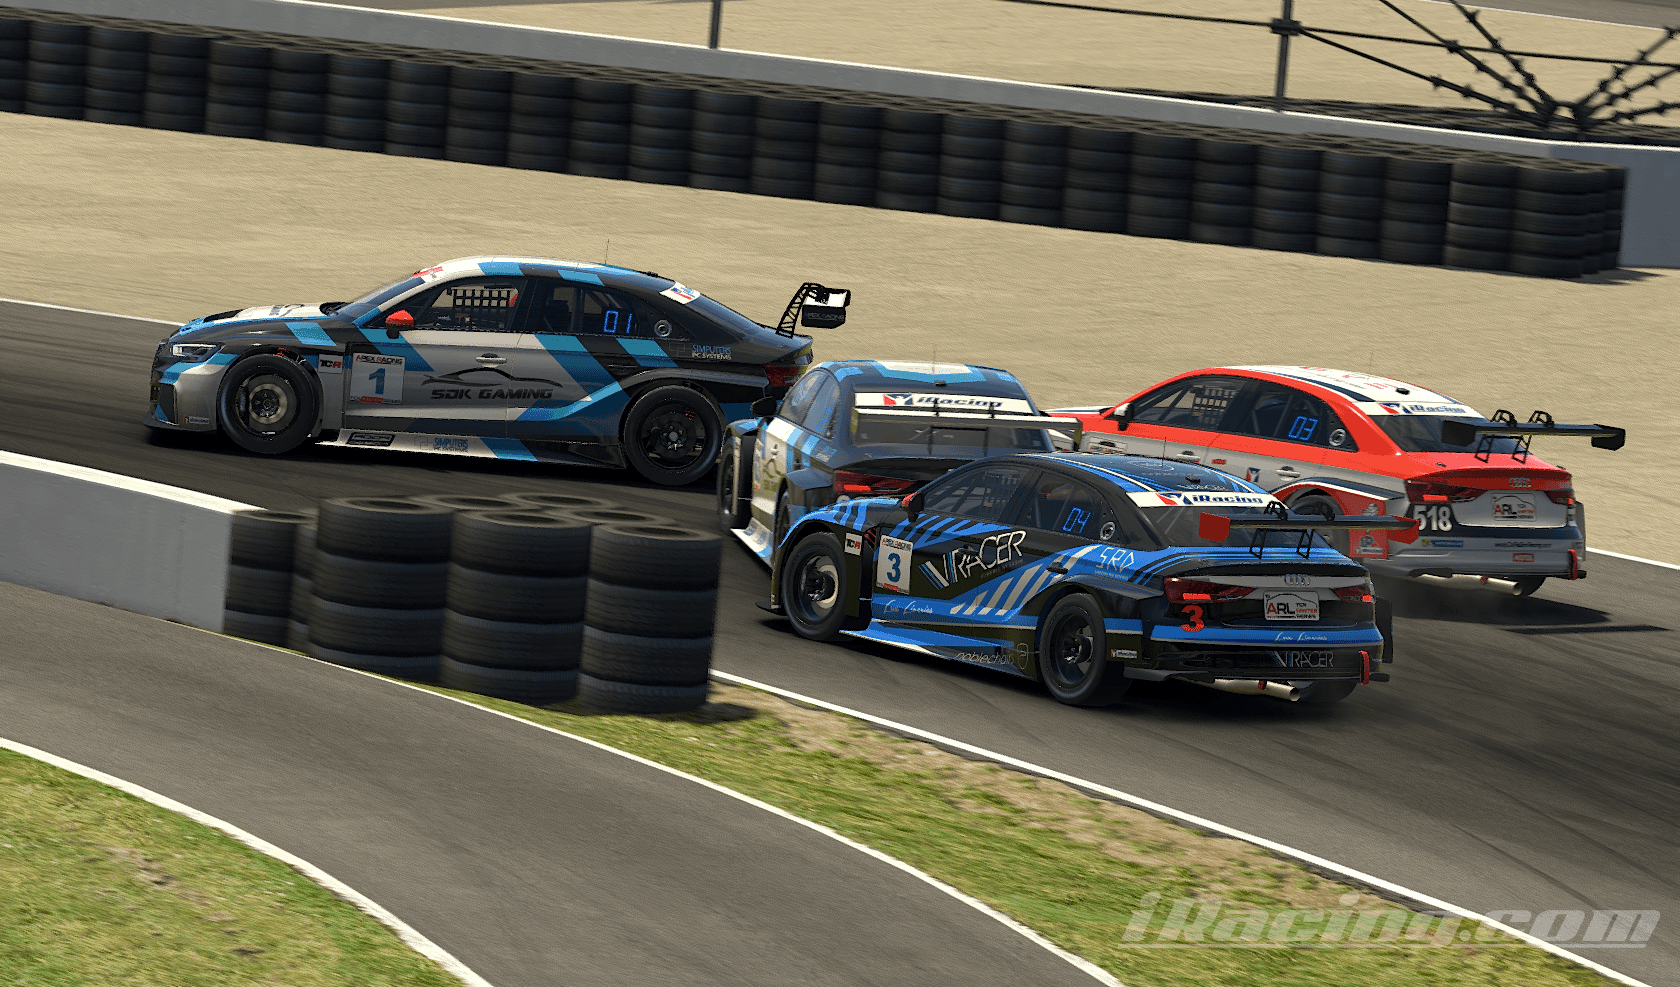 ARL – TCR Winter Series 2019/20 R14 Daytona (Broadcast)